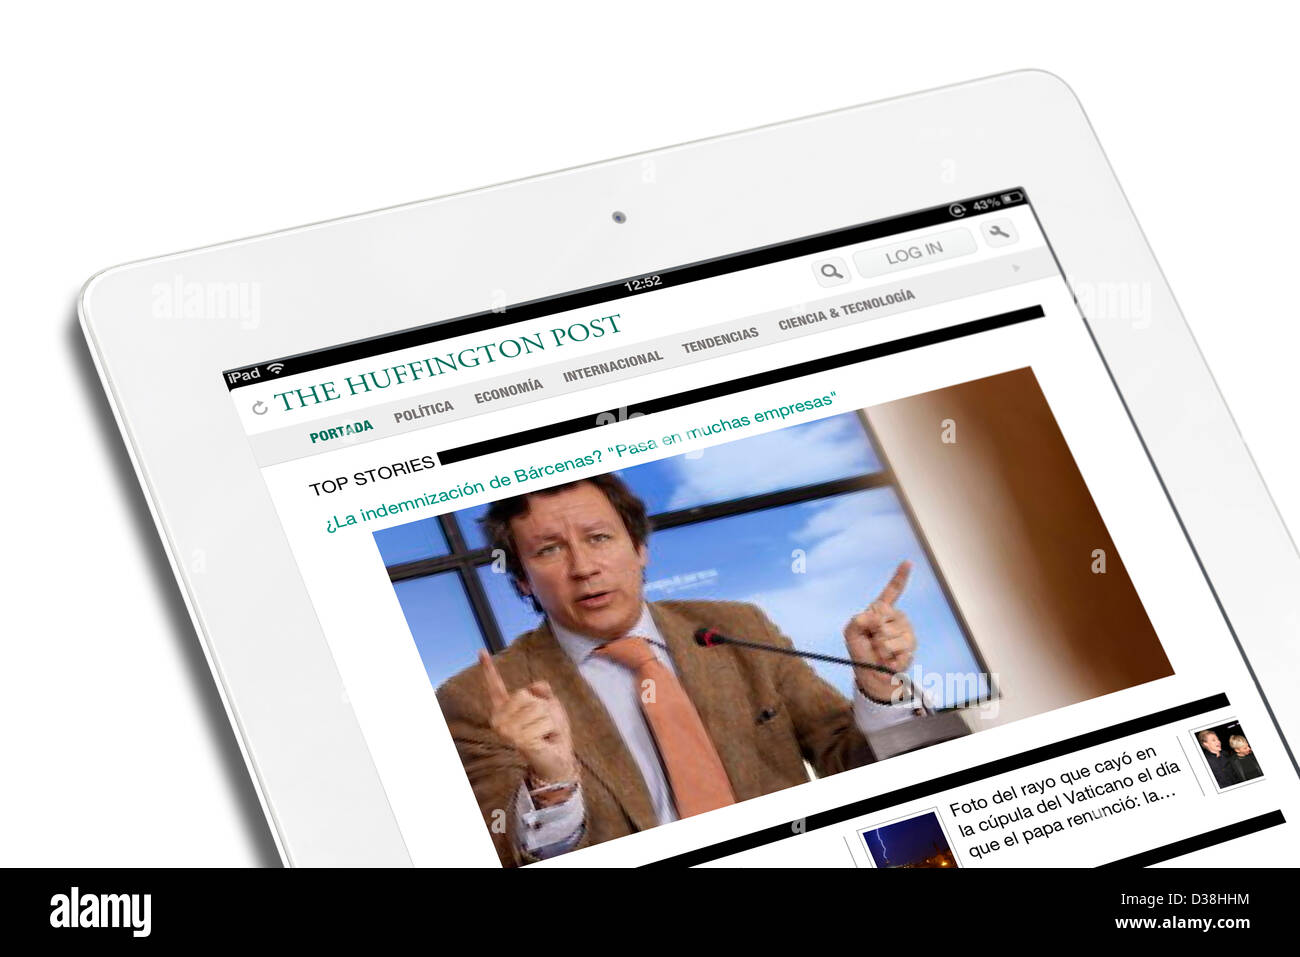 iPad App showing the Spanish edition of the Huffington Post viewed on a 4th generation Apple iPad - Stock Image